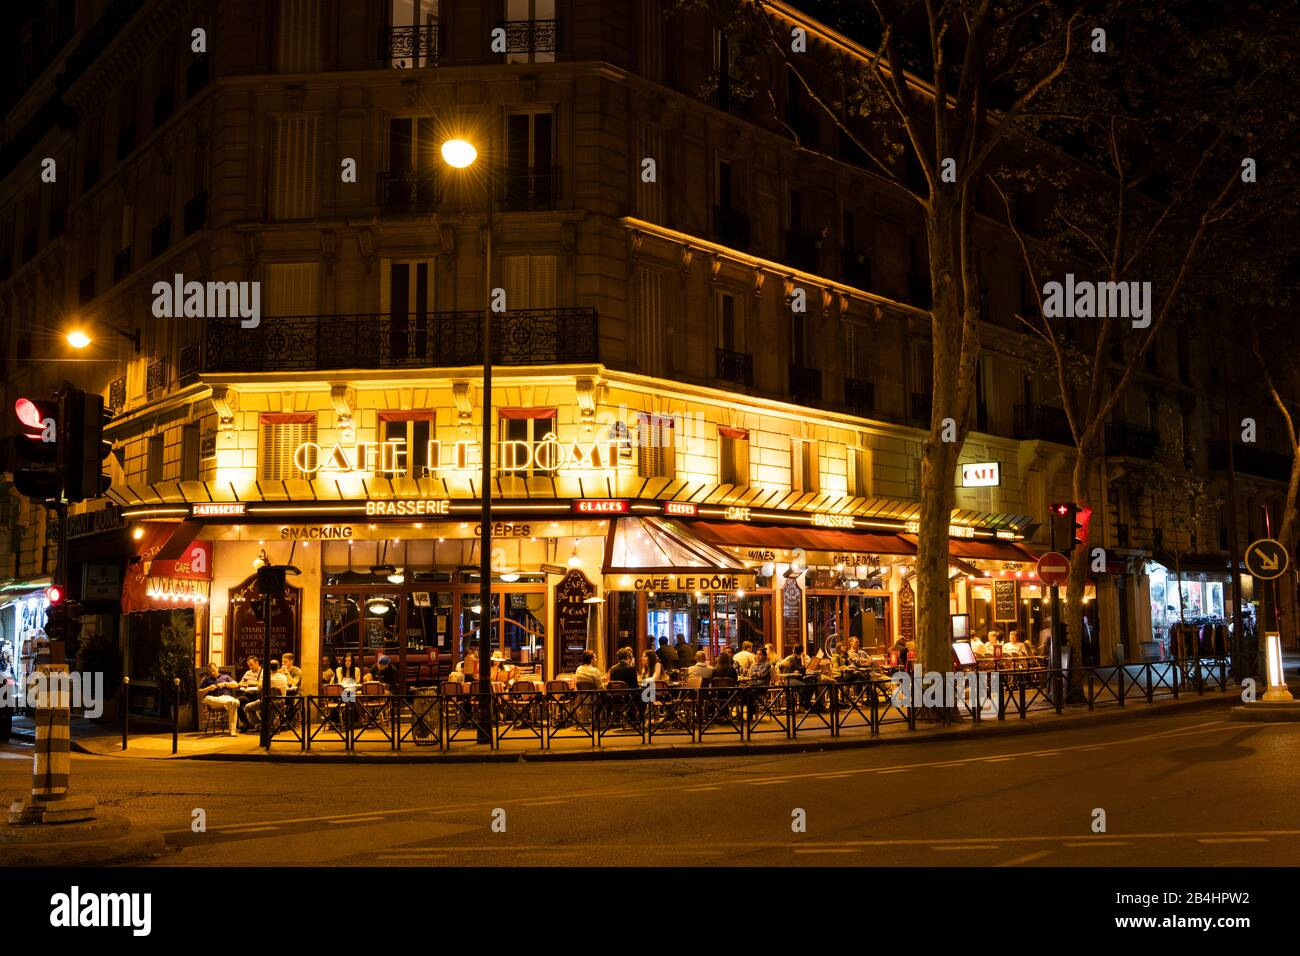 das Café Le Dôme in der Rue Saint-Dominique im 7. Arrondissement bei Nacht, Paris, Frankreich, Europa Stock Photo